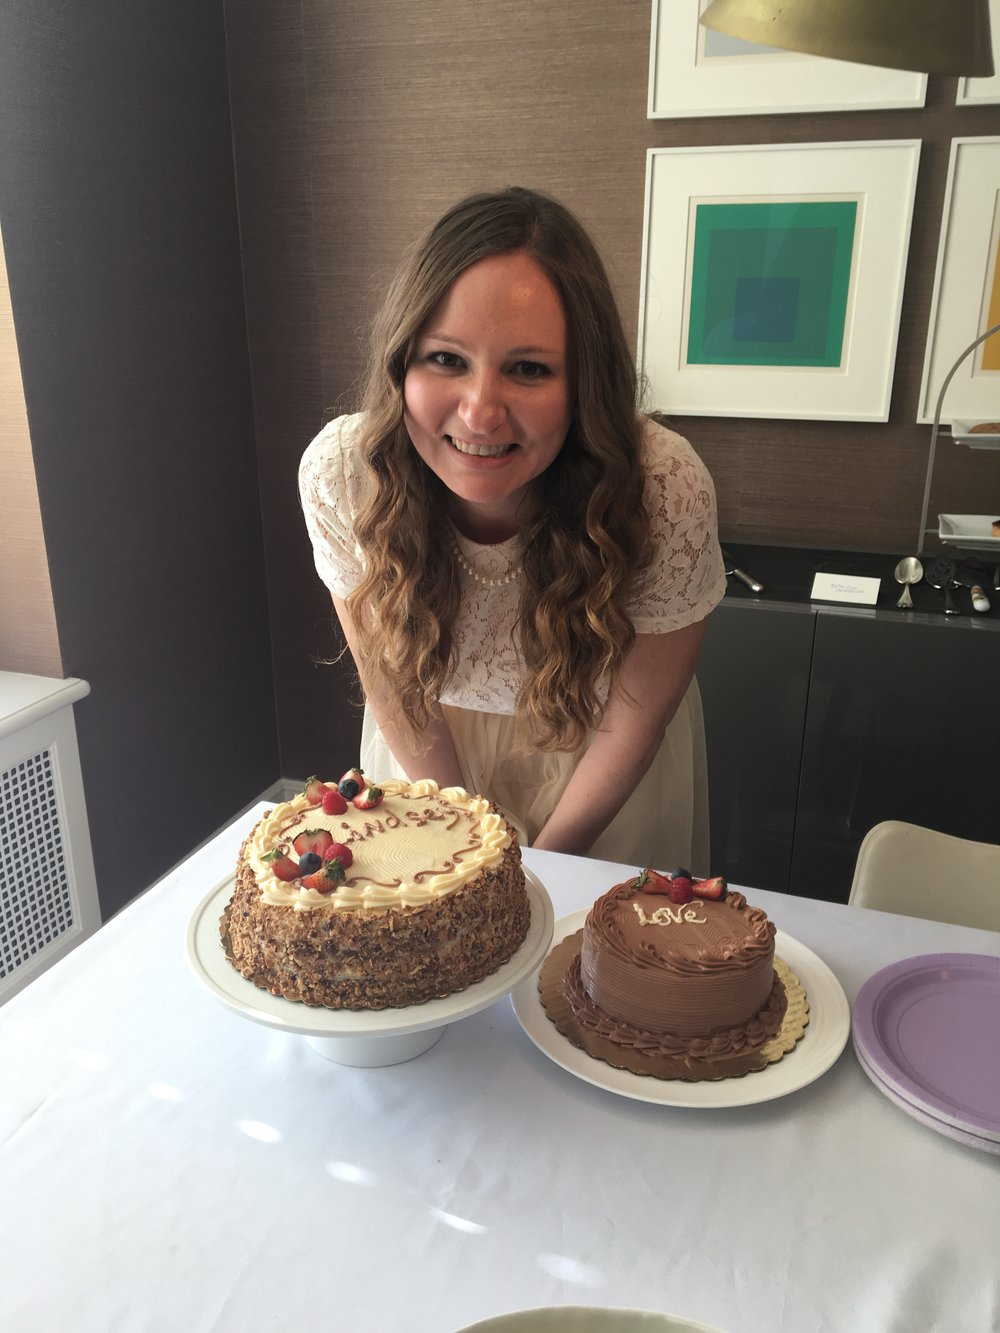 Lindsey, the bride and Gluten Free Cake from NoGlu Gluten Free NYC Bakery